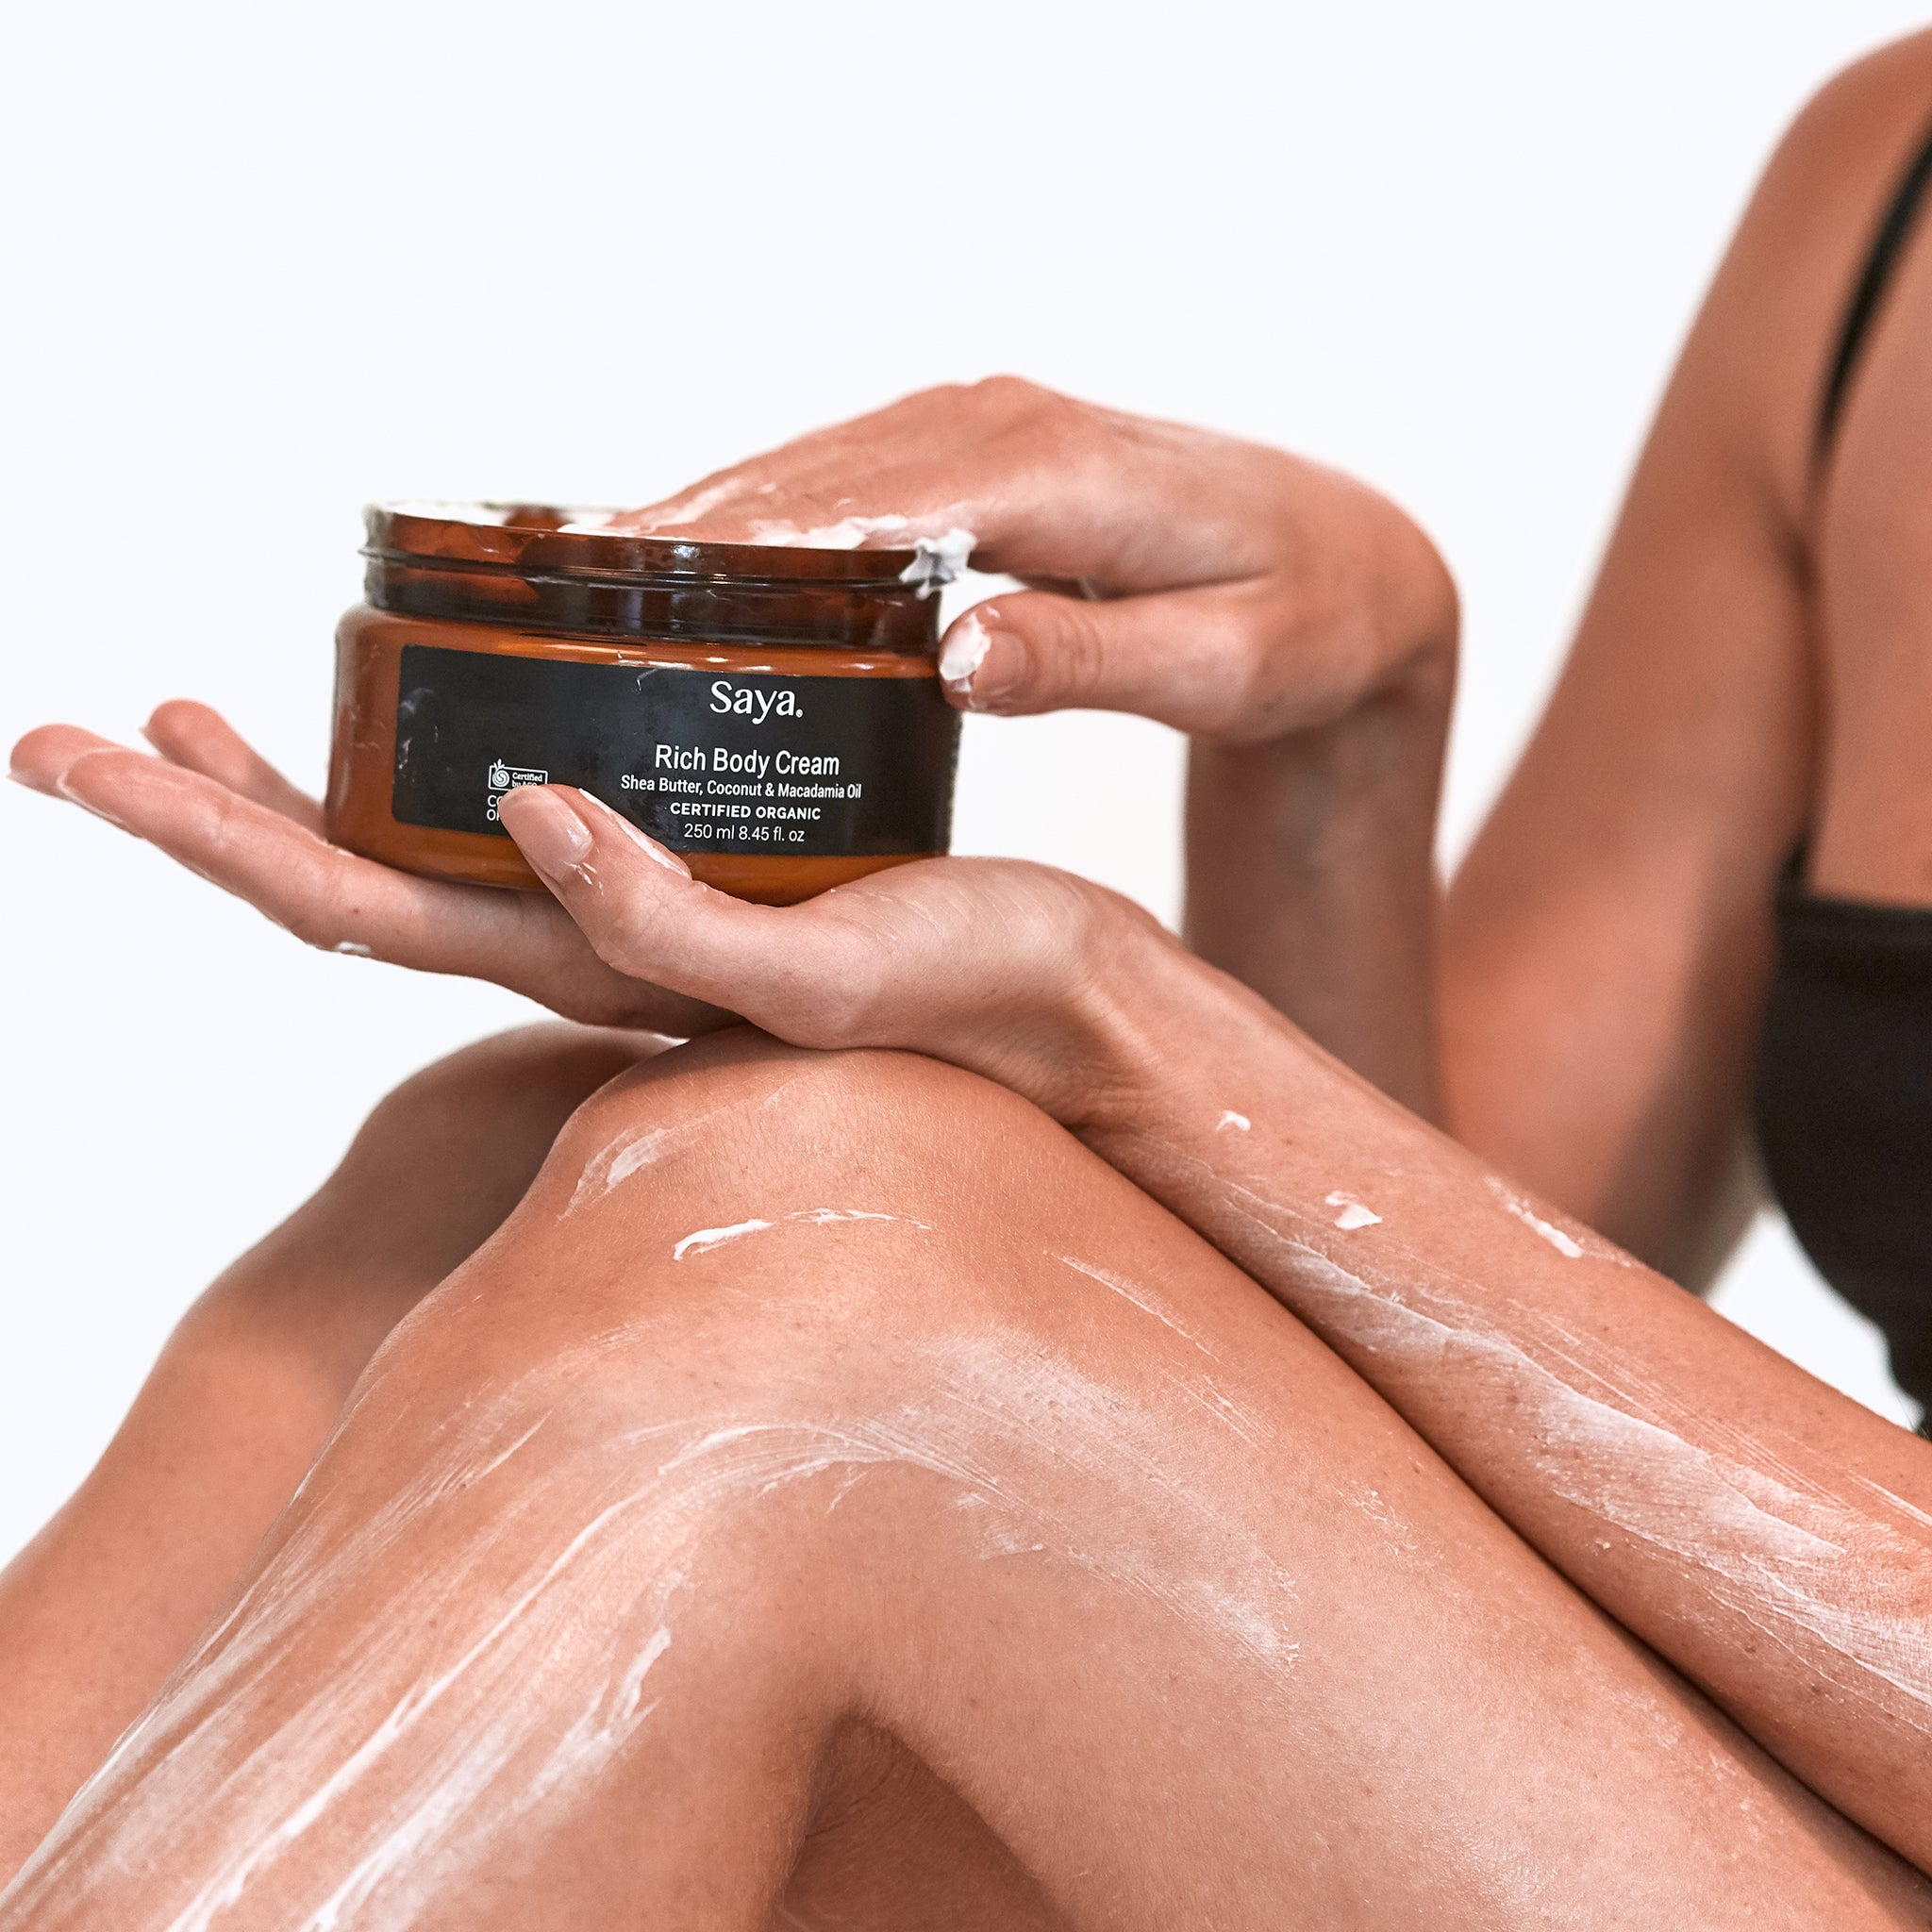 Rich Body Cream